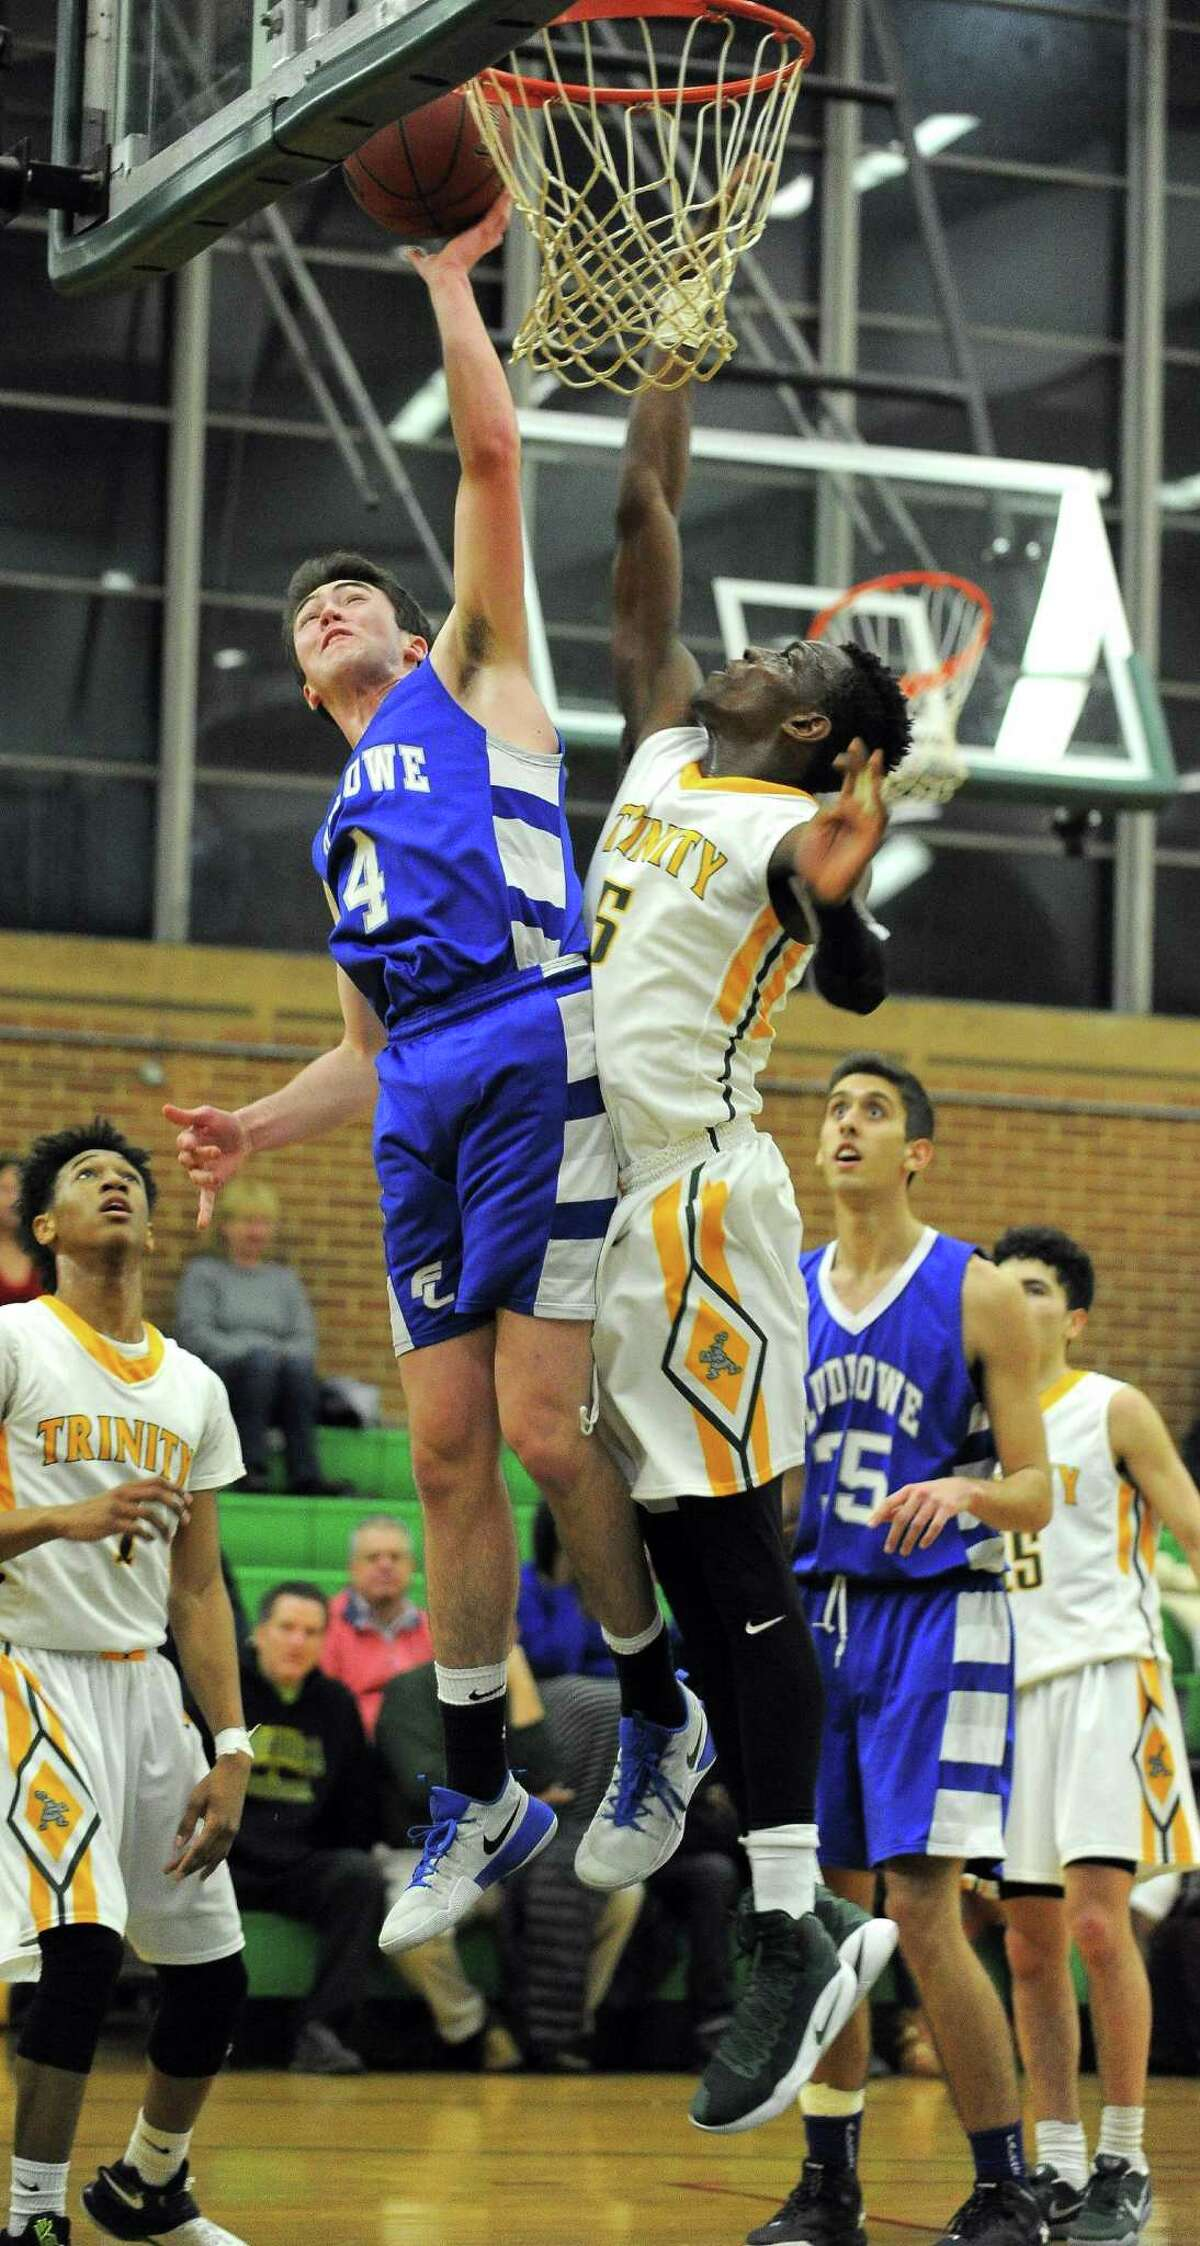 Ludlowe Sean Chase puts up a shot against Trinity Contavio Dutreil in an FCIAC boys basketball game at Trinity Catholic High School's Walsh Court in Stamford, Conn. on Jan. 24, 2017.